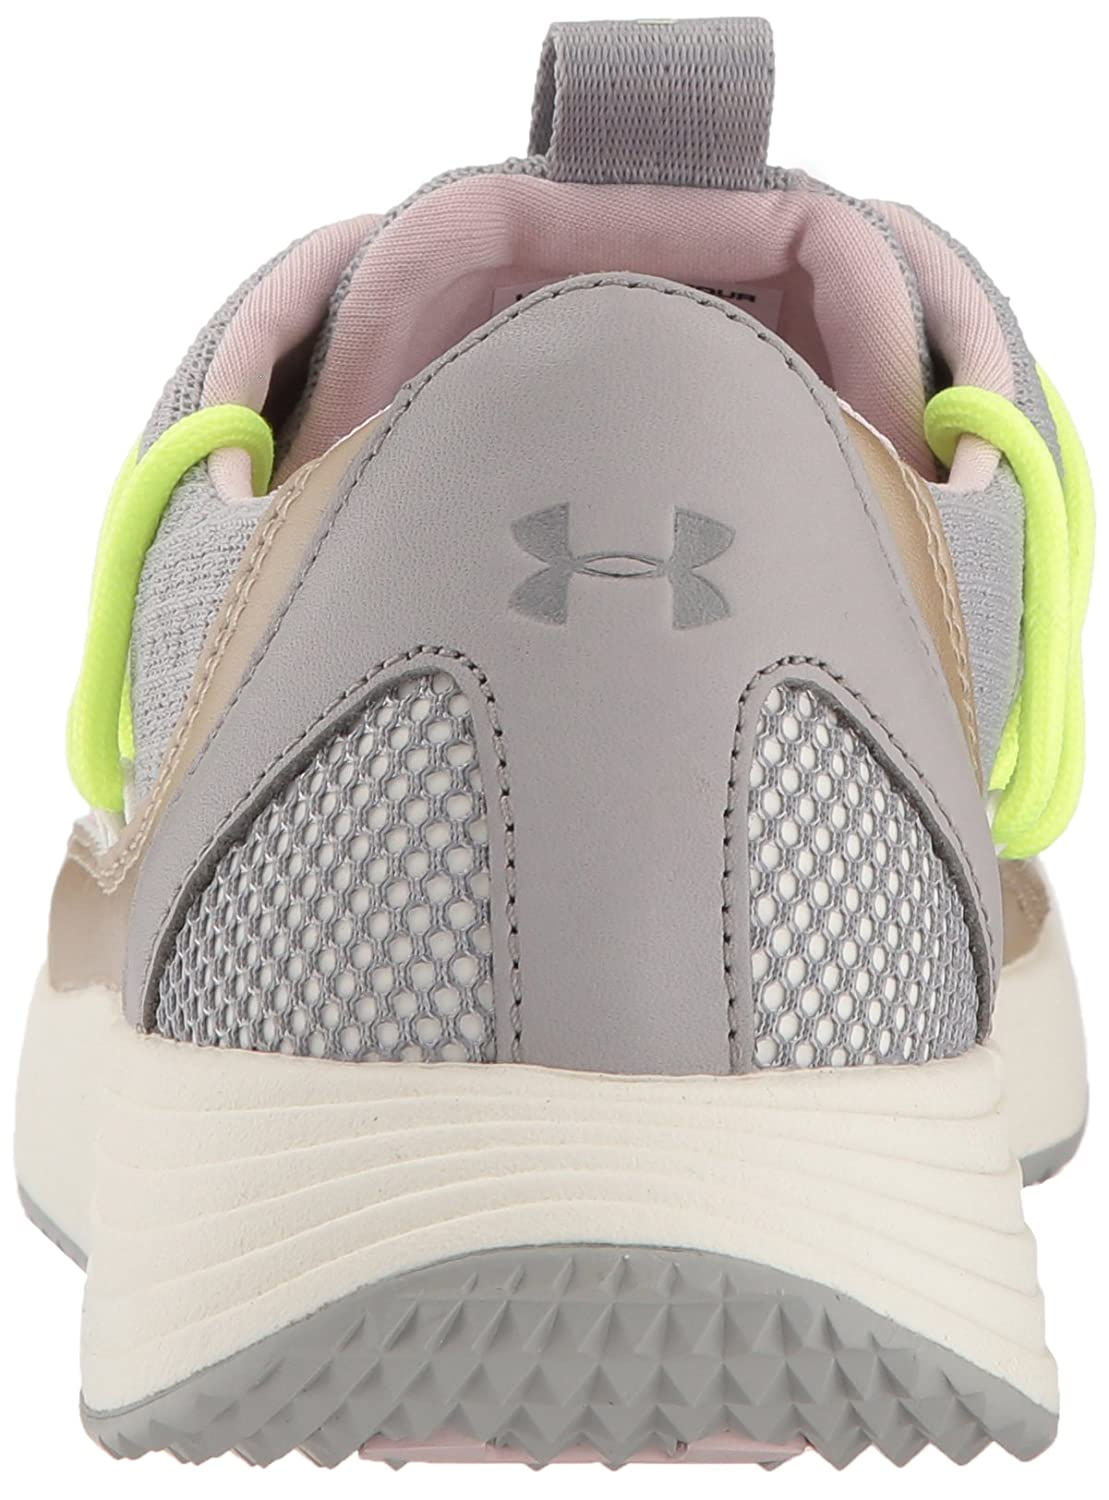 Under Armour Women's Breathe Lace Sneaker B071S8CTVT 7.5 M US|Tin (102)/Ivory